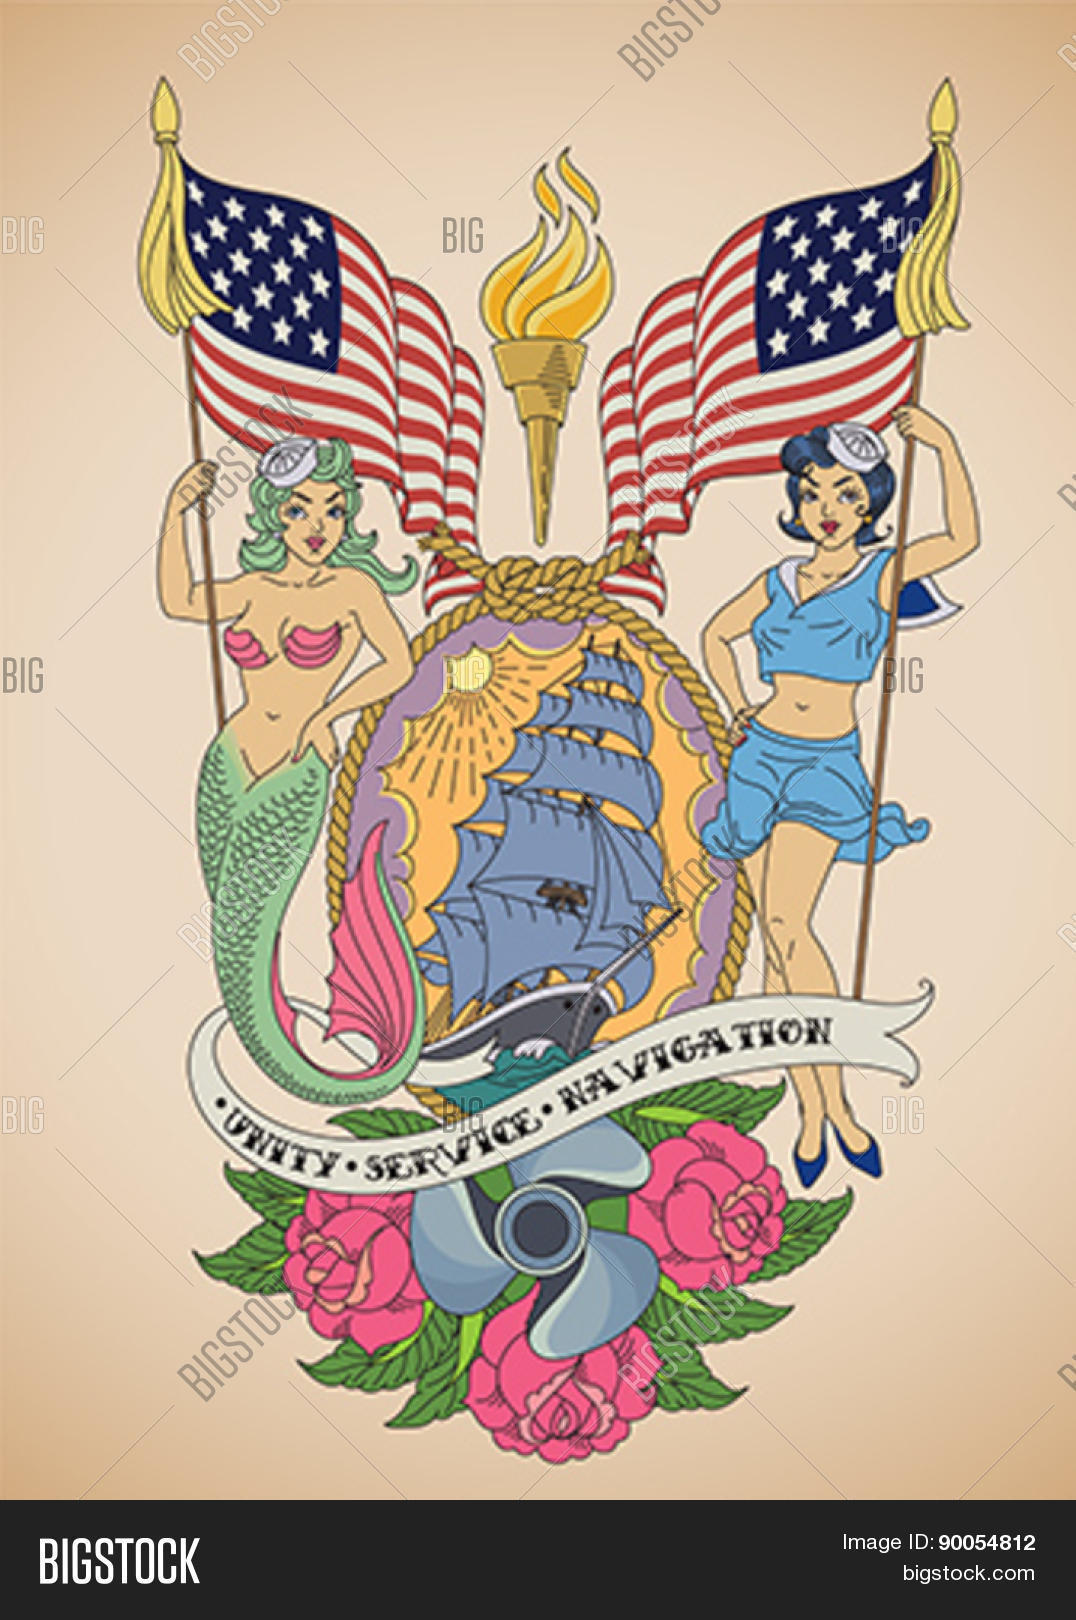 5cc4d830d Old-school US Navy tattoo of a sensual pin-up sailor and a mermaid